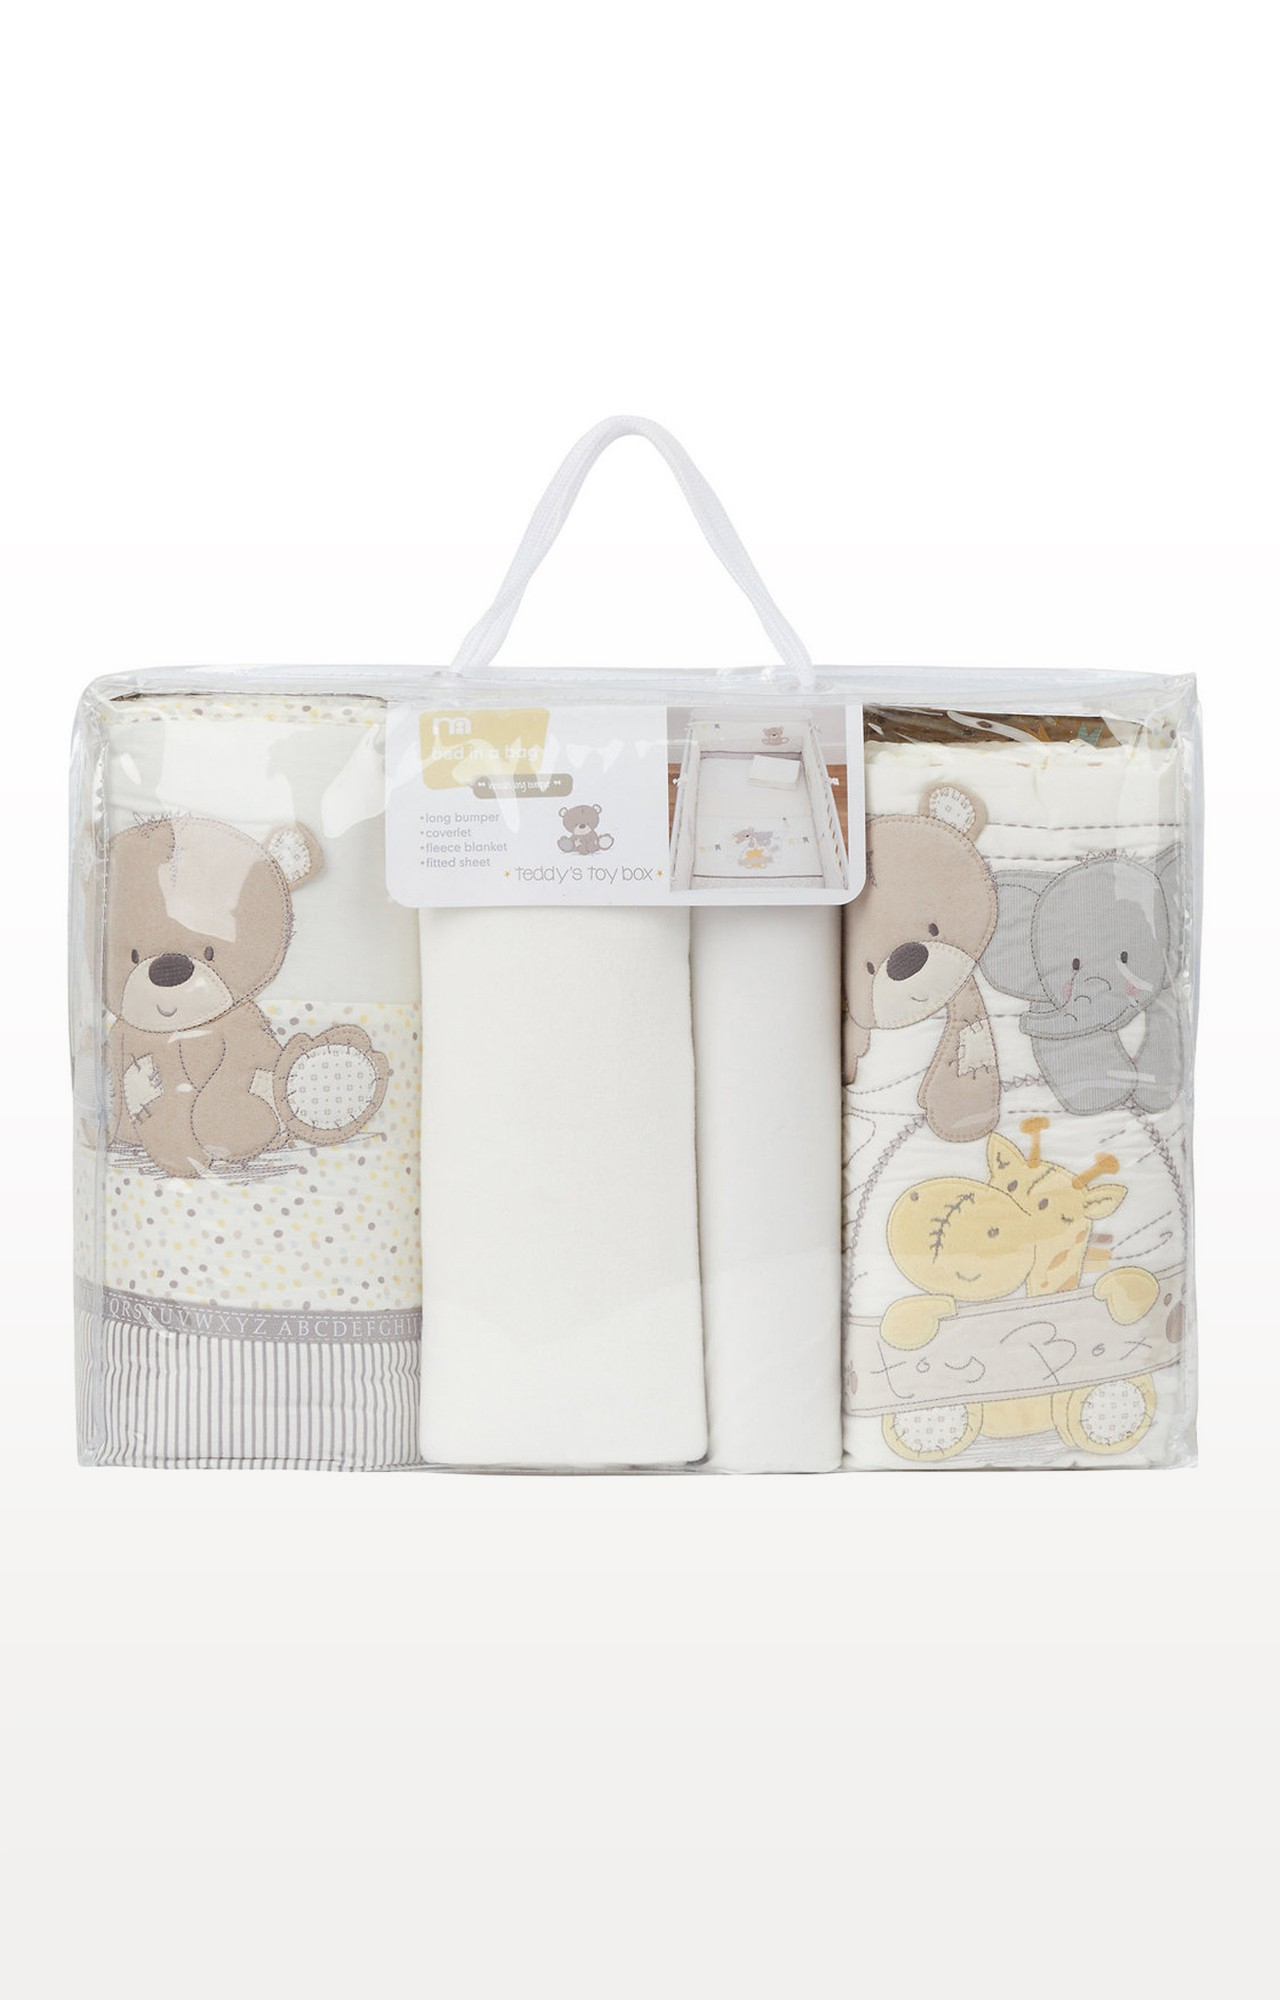 Mothercare   Cream Teddy'S Toy Box Bed In Bag (Includes Long Bumper)